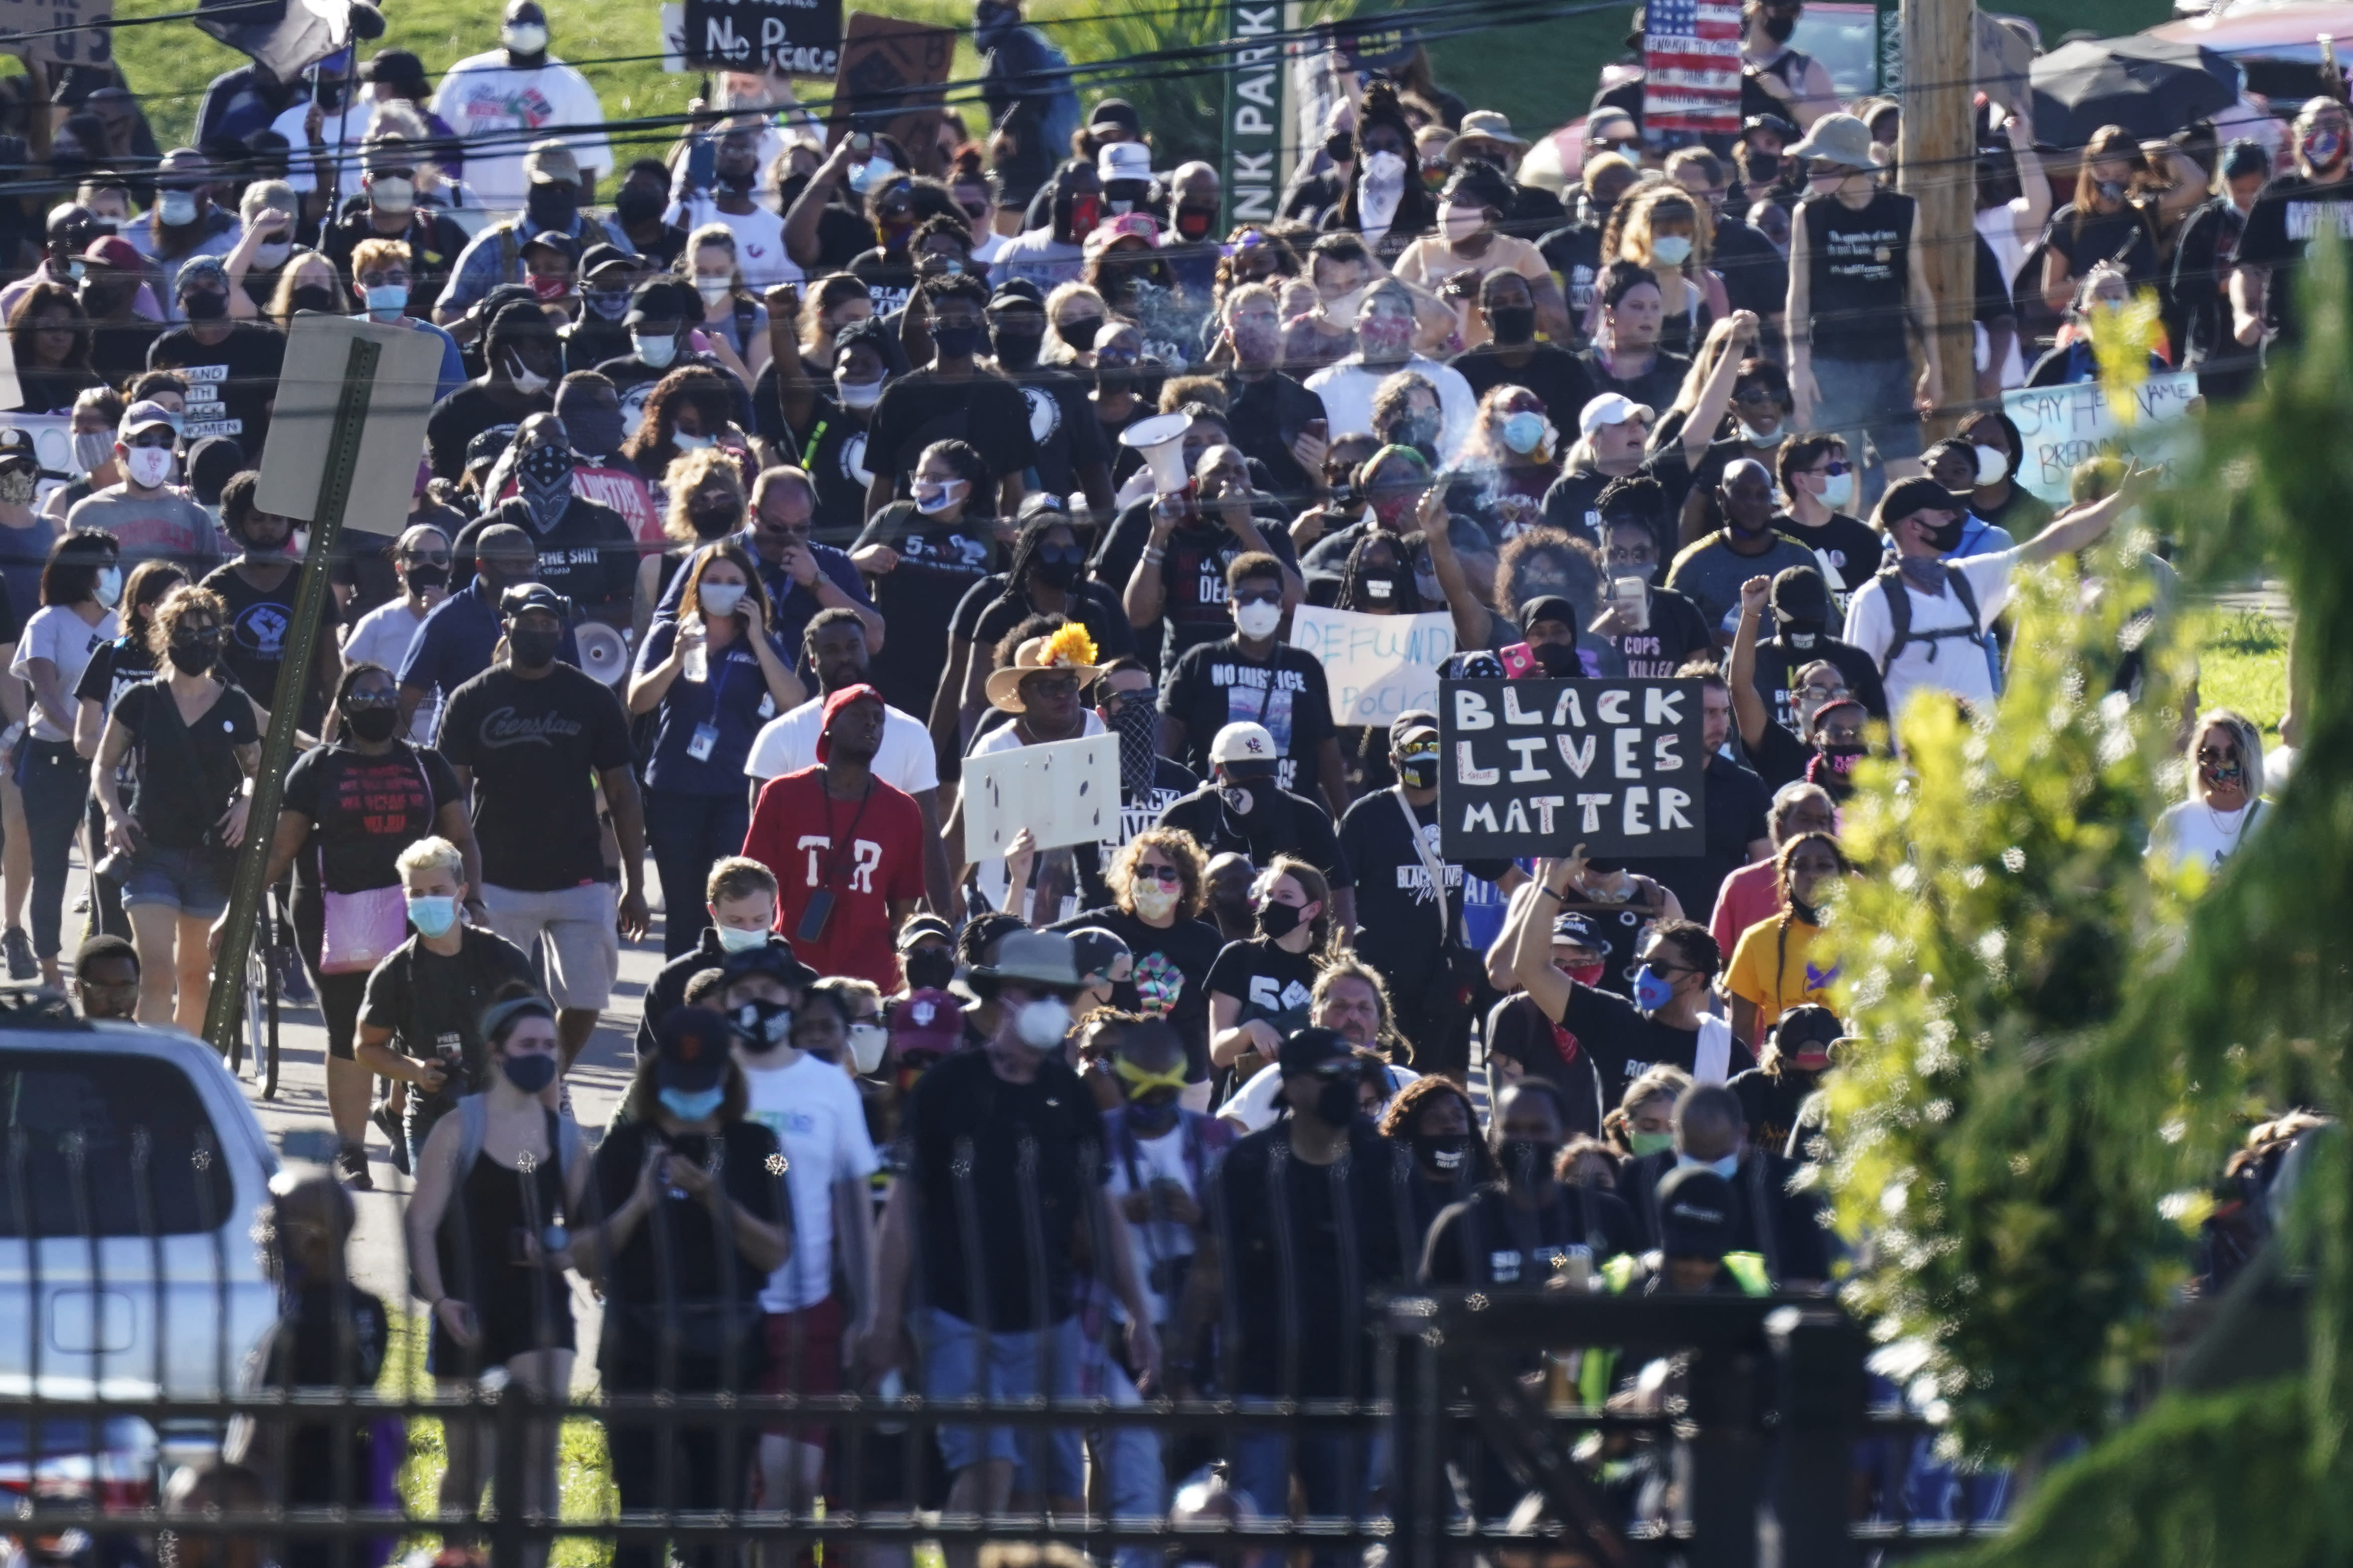 Protesters march past the gates of Churchill Downs racetrack before the 146th running of the Kentucky Derby, Saturday, Sept. 5, 2020, in Louisville, Ky. (AP Photo/Charlie Riedel)